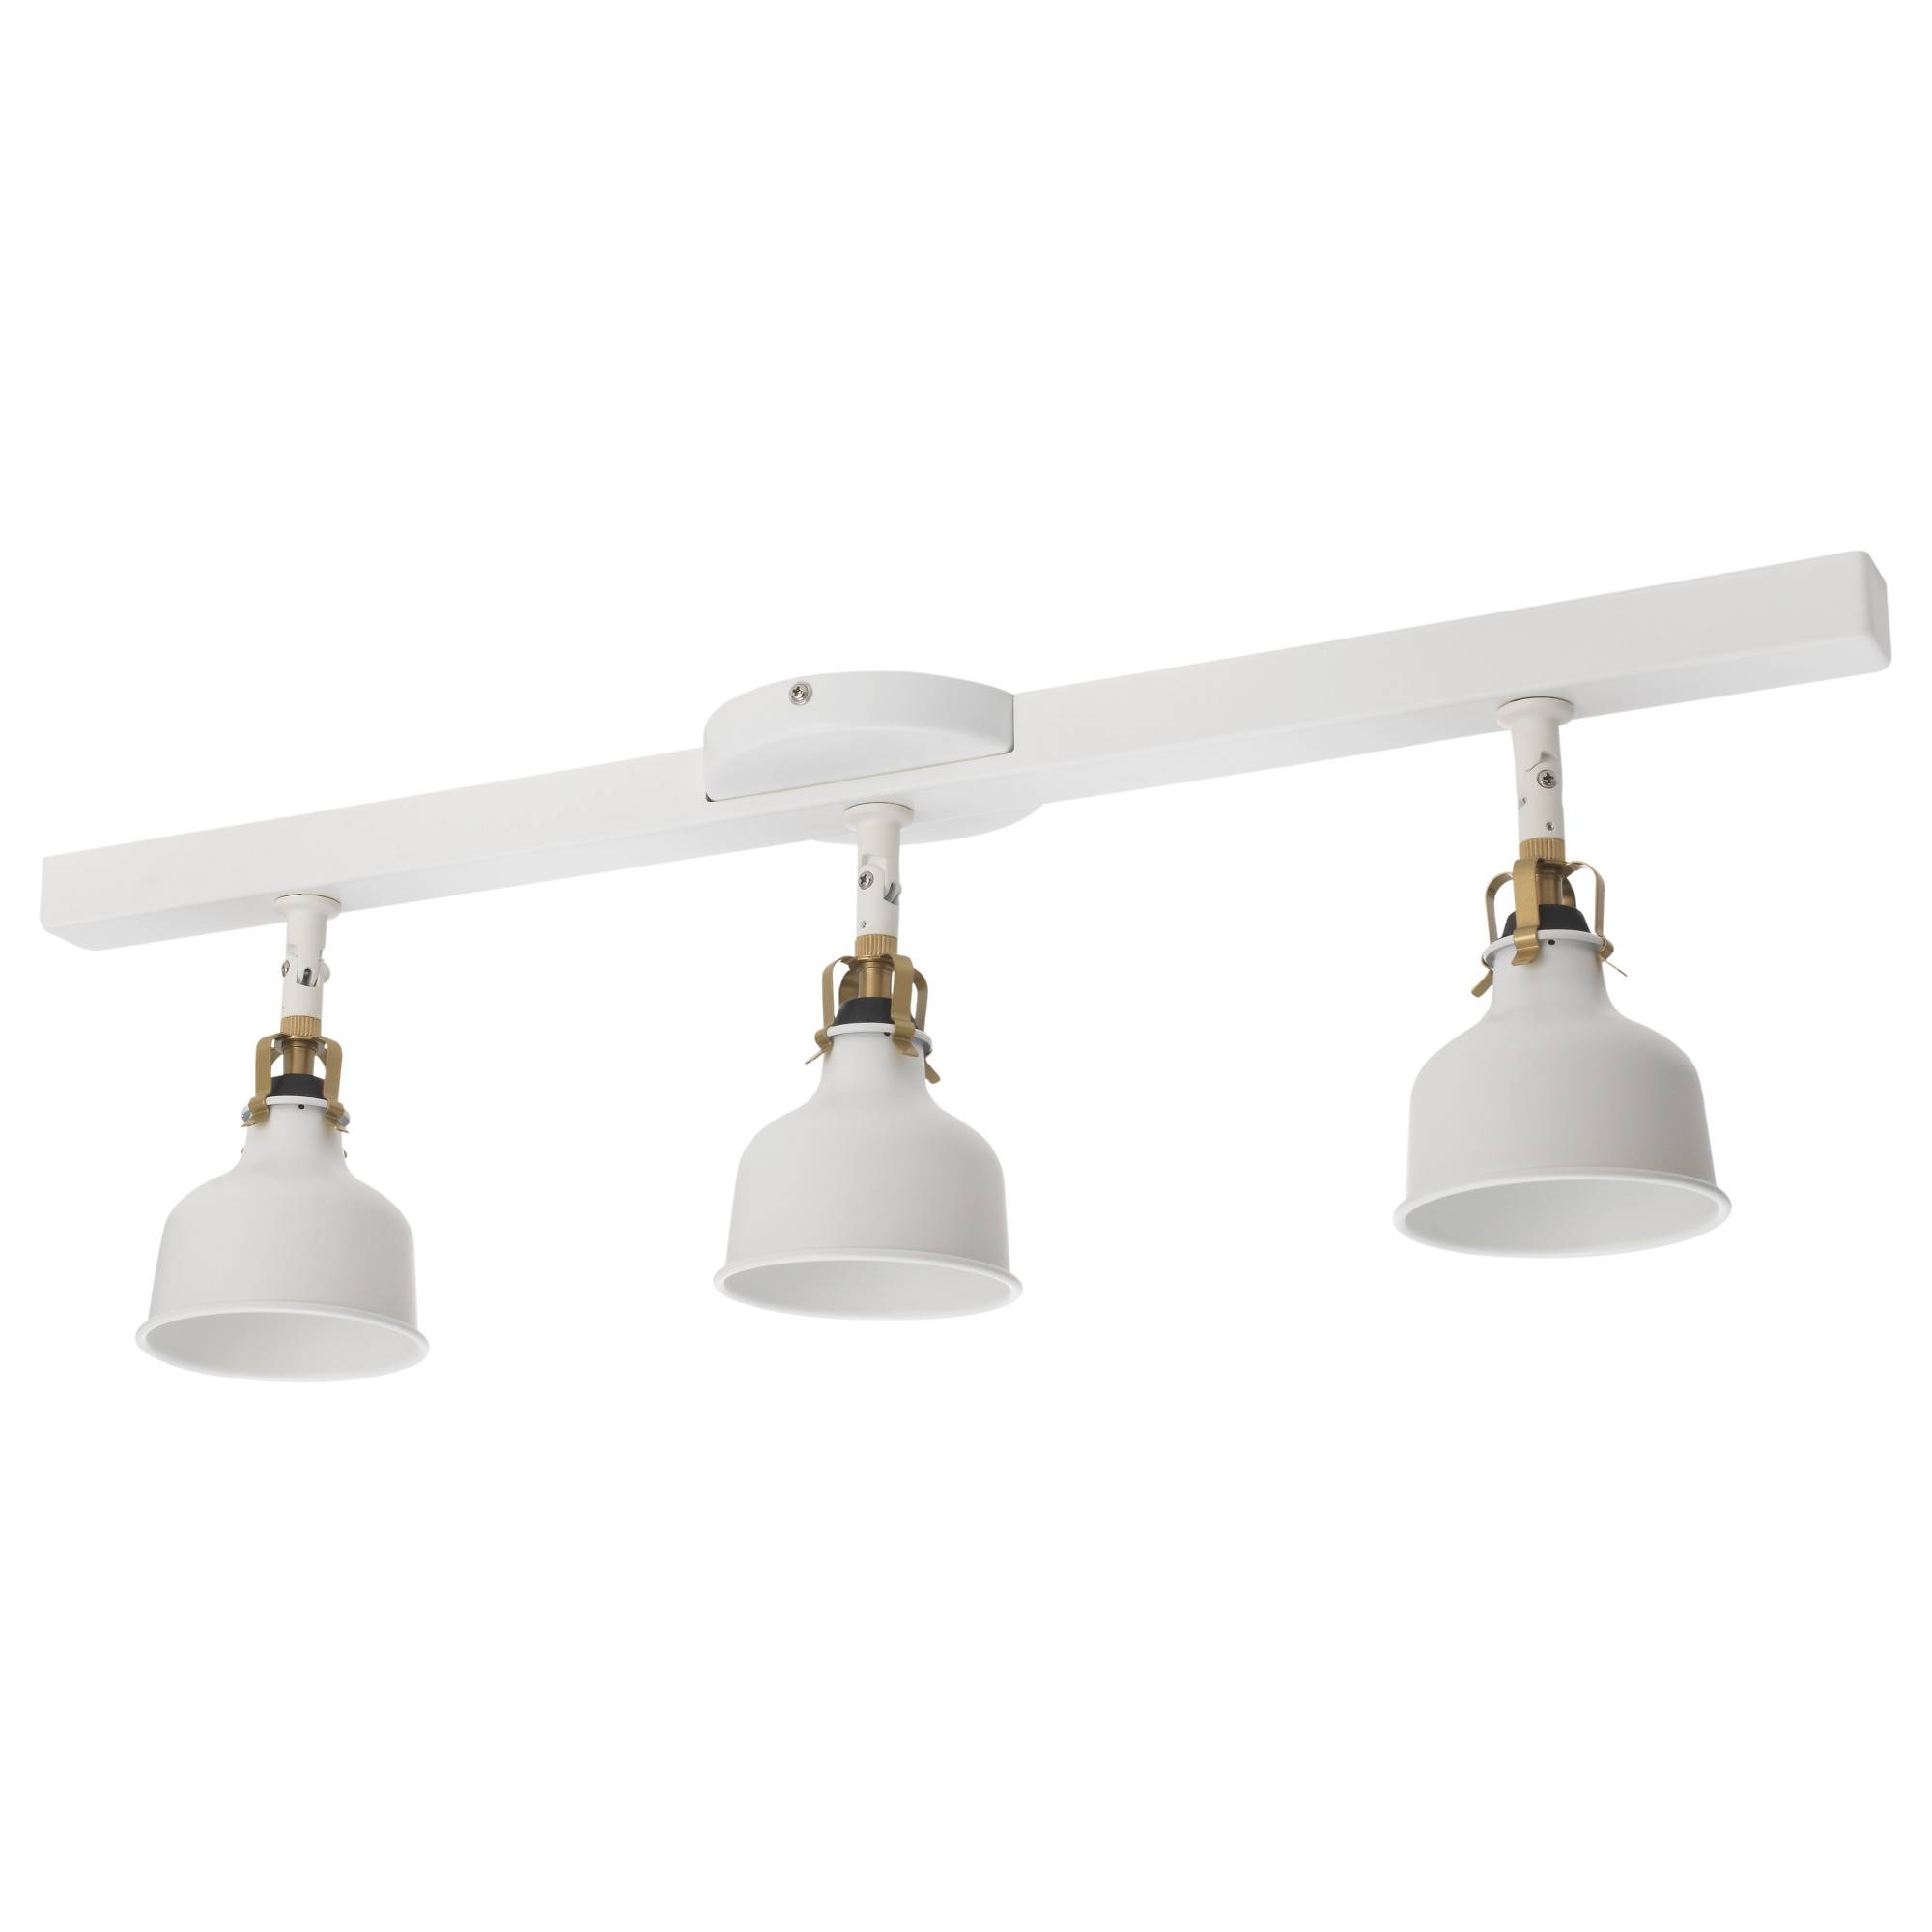 Track Lighting - Ikea with regard to Halo Track Lights (Image 13 of 15)